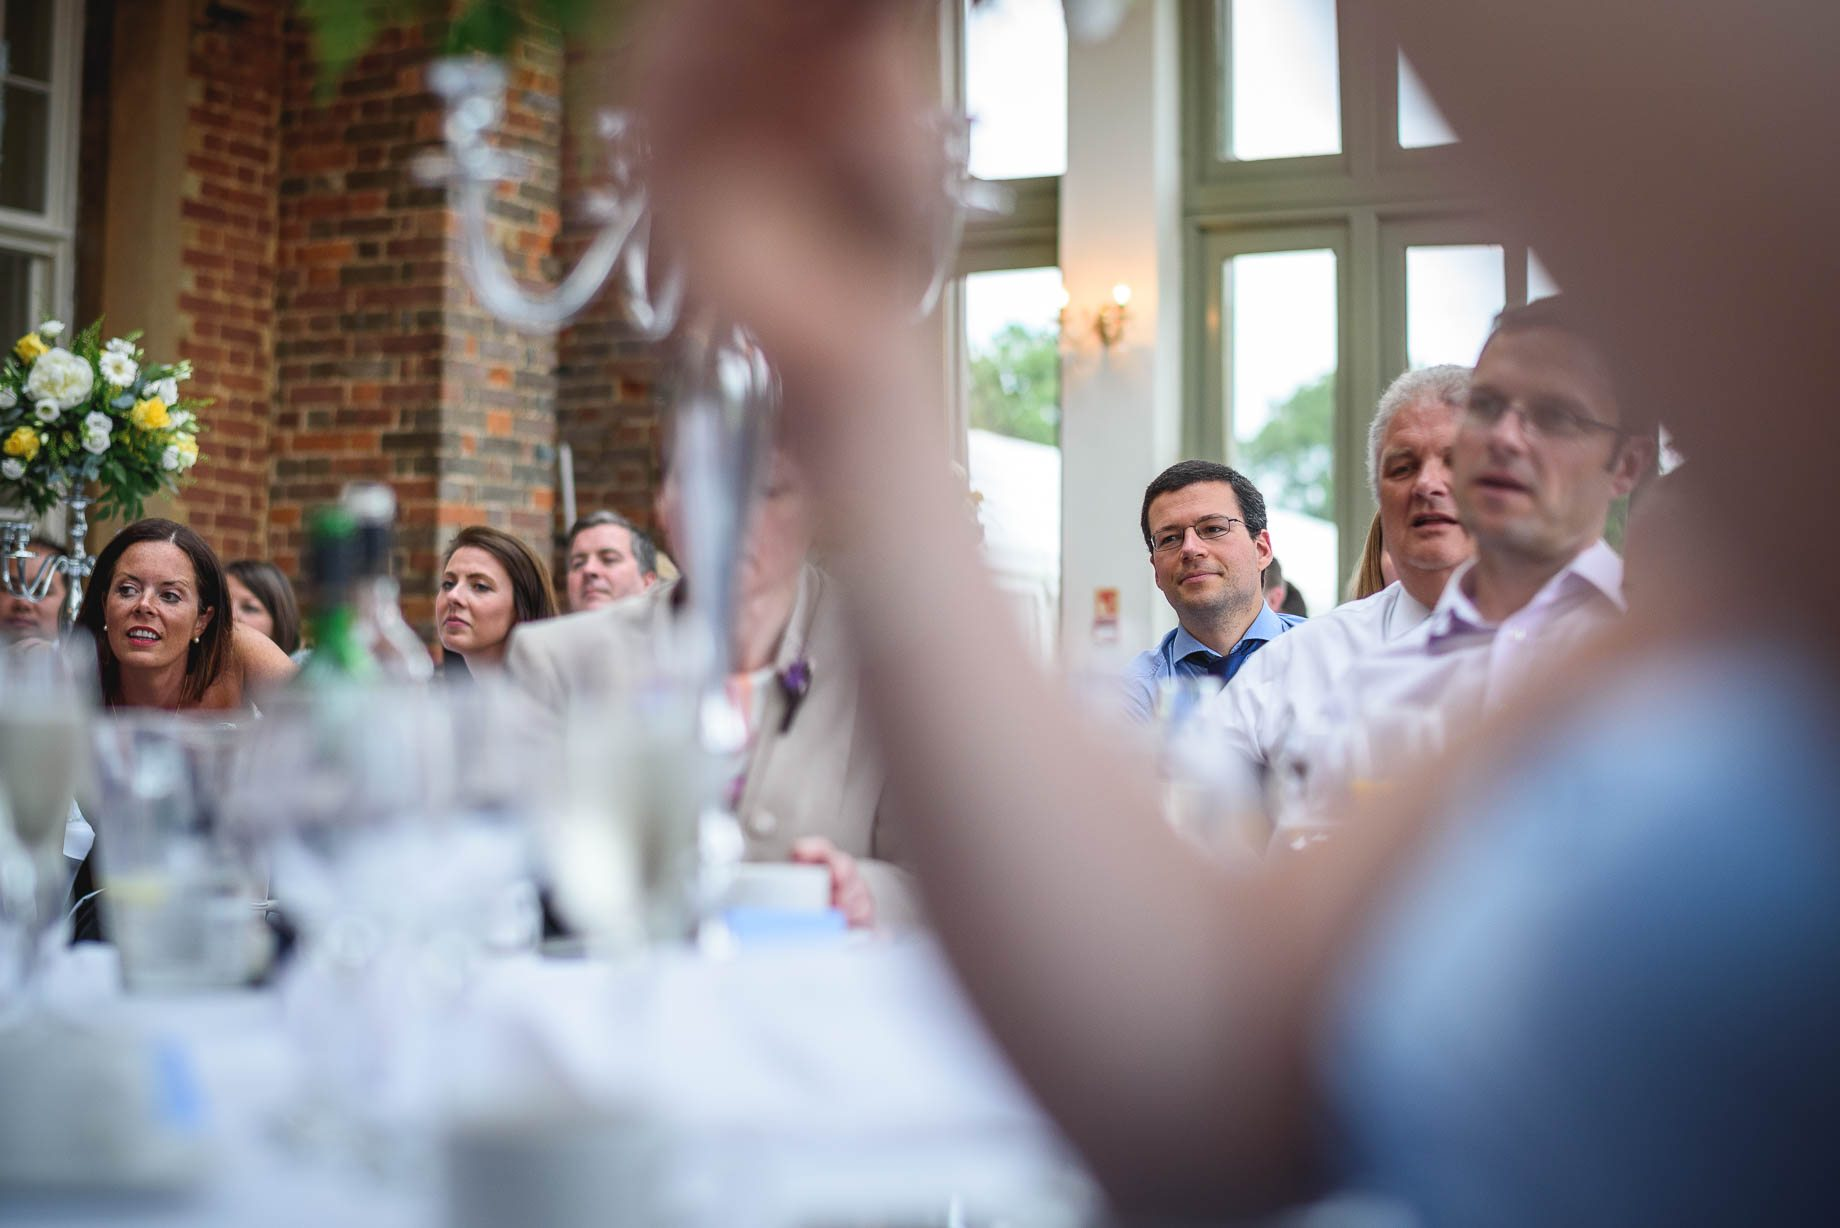 Hertfordshire wedding photography - Sarah and Stephen by Guy Collier Photography (117 of 161)